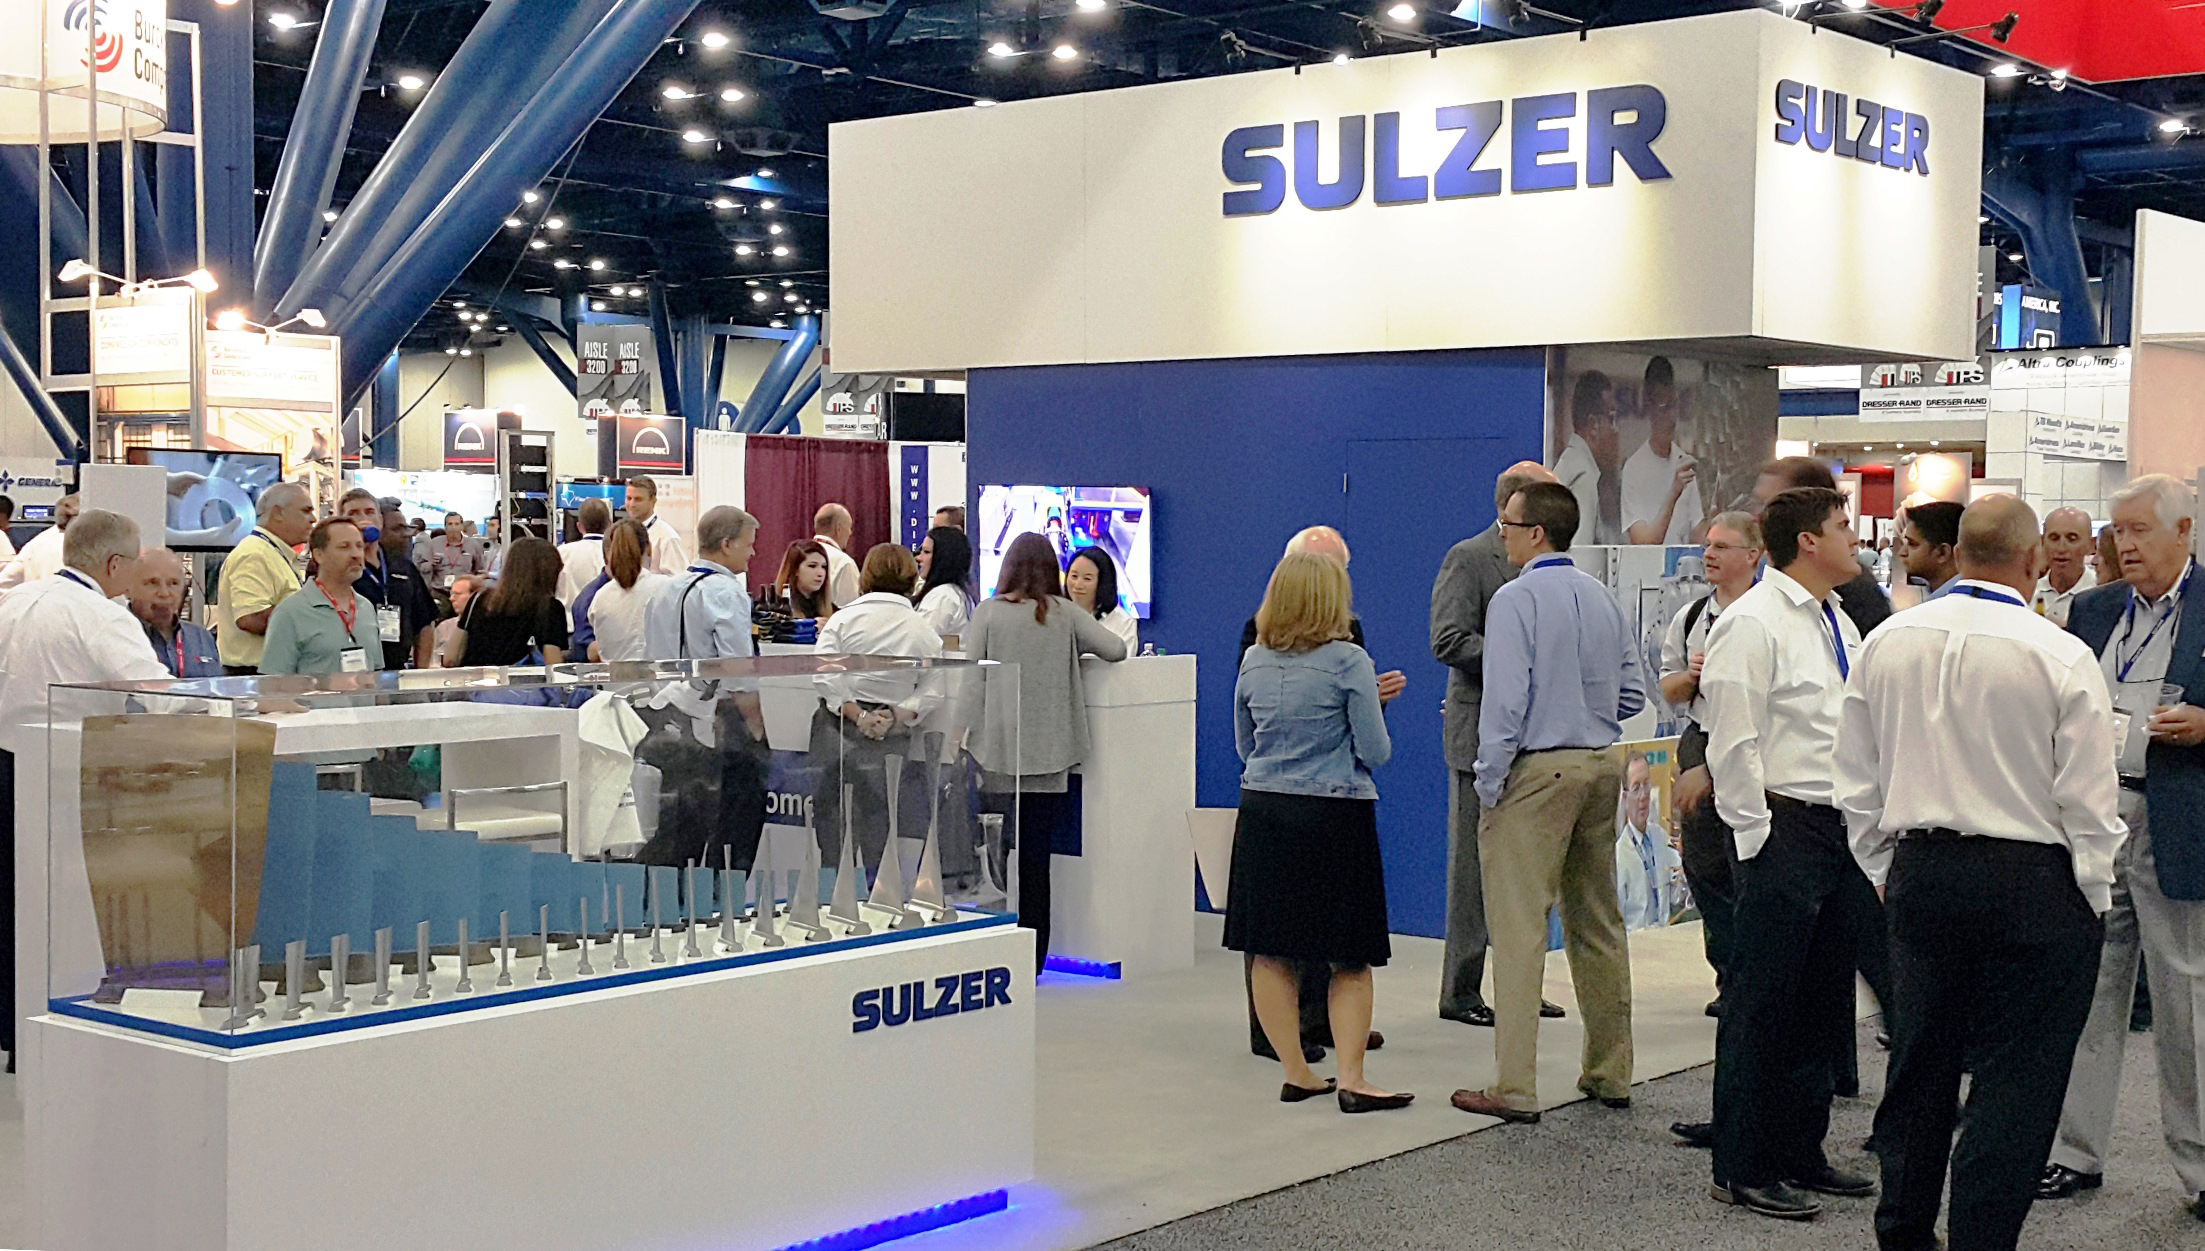 Sulzer's turnkey services and pumping solutions at Turbomachinery & Pump Symposia 2017